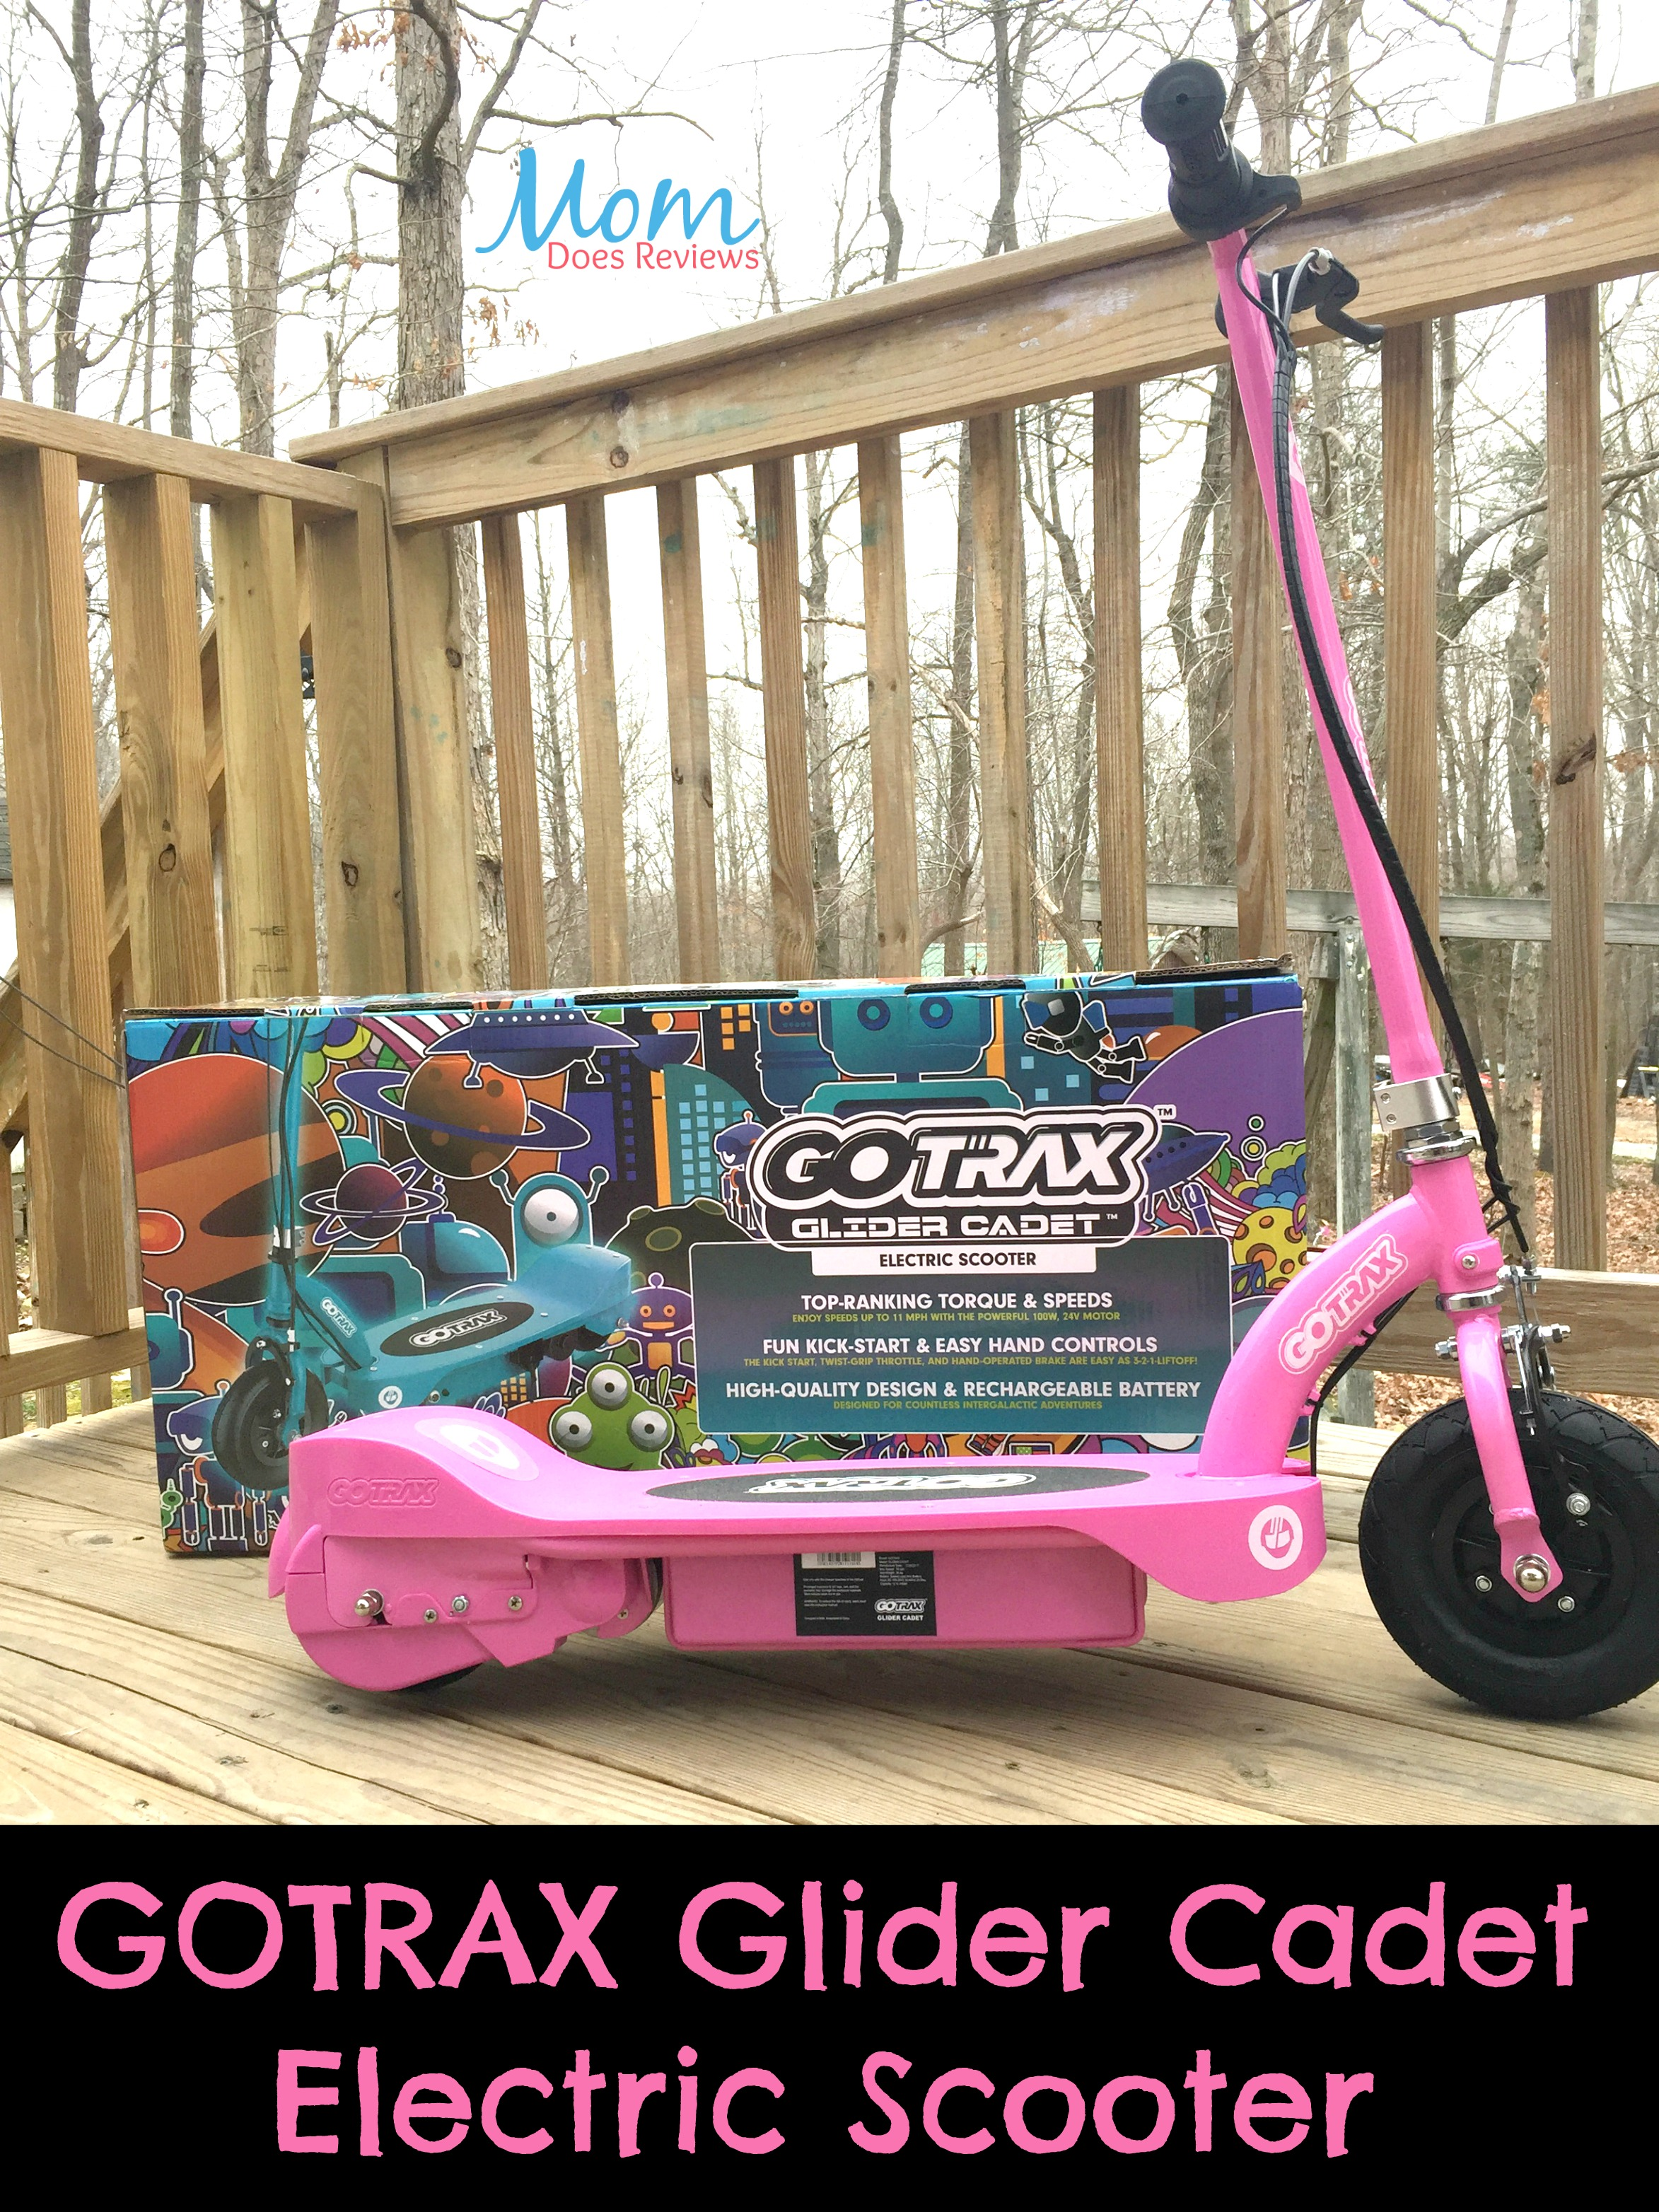 Zoom Along With Gotrax Glider Cadet Electric Scooter